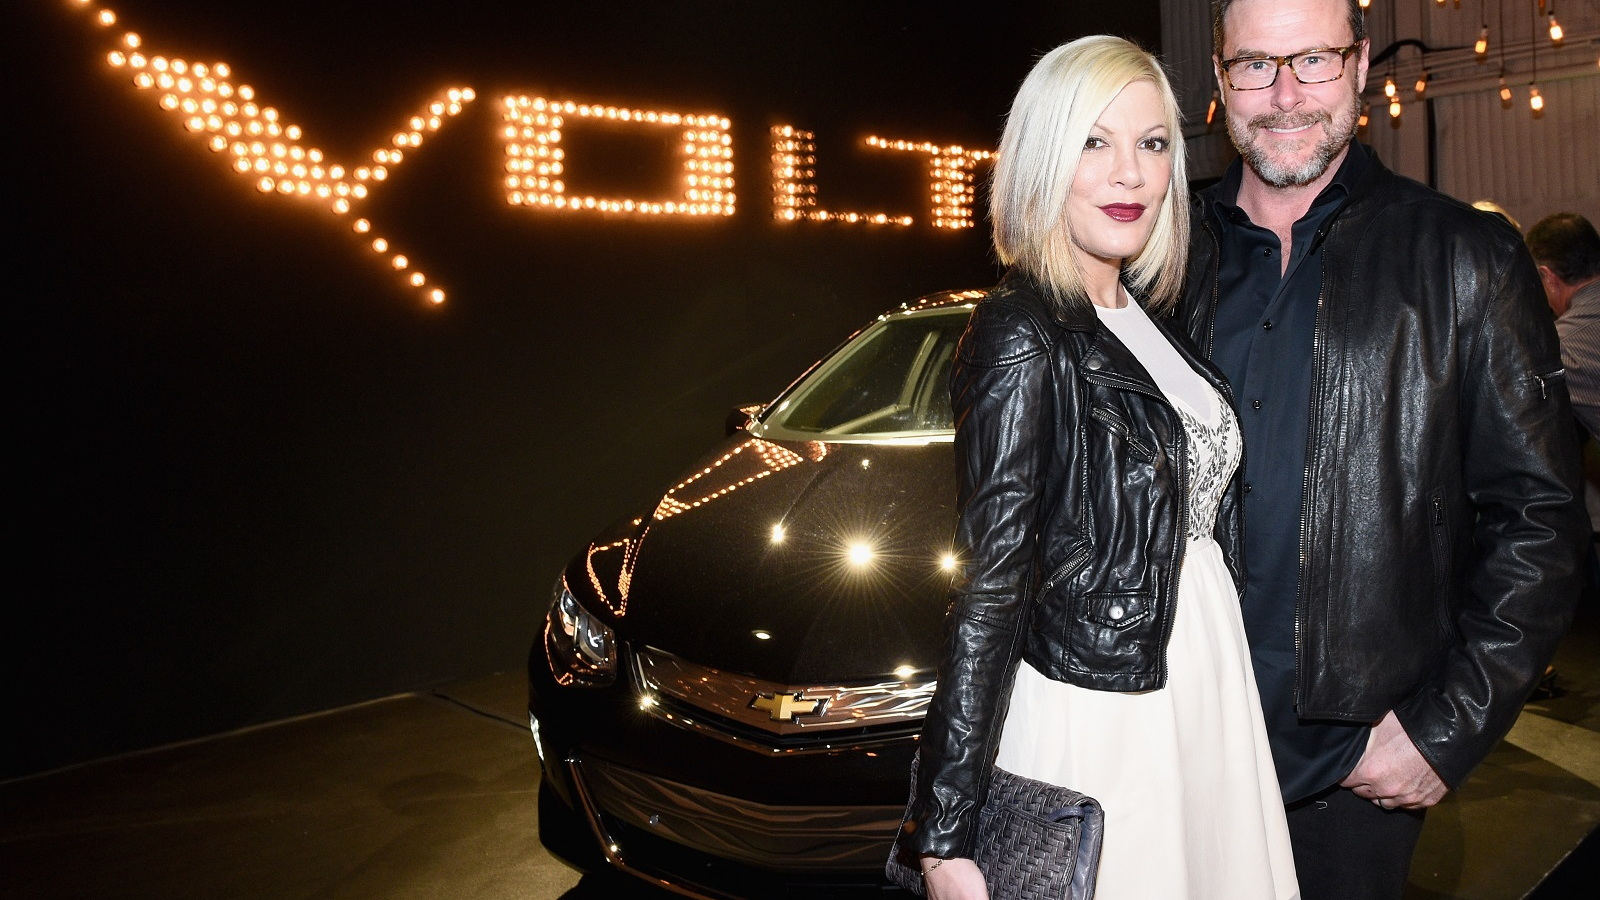 2016 Chevrolet Volt with Tori Spelling and Dean McDermott, Jan 2015